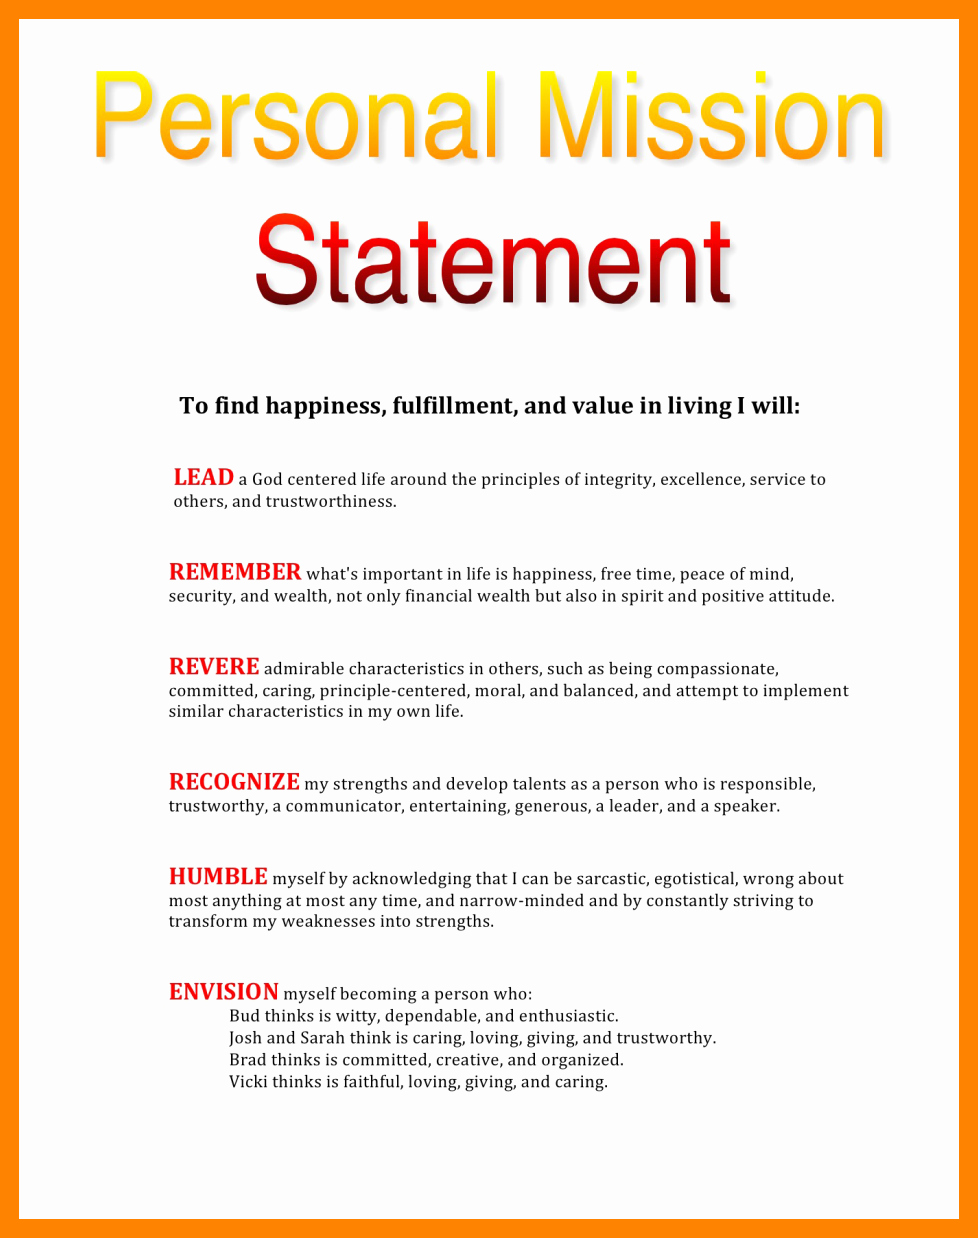 Personal Mission Statement Template Awesome 11 Mission Statements Examples